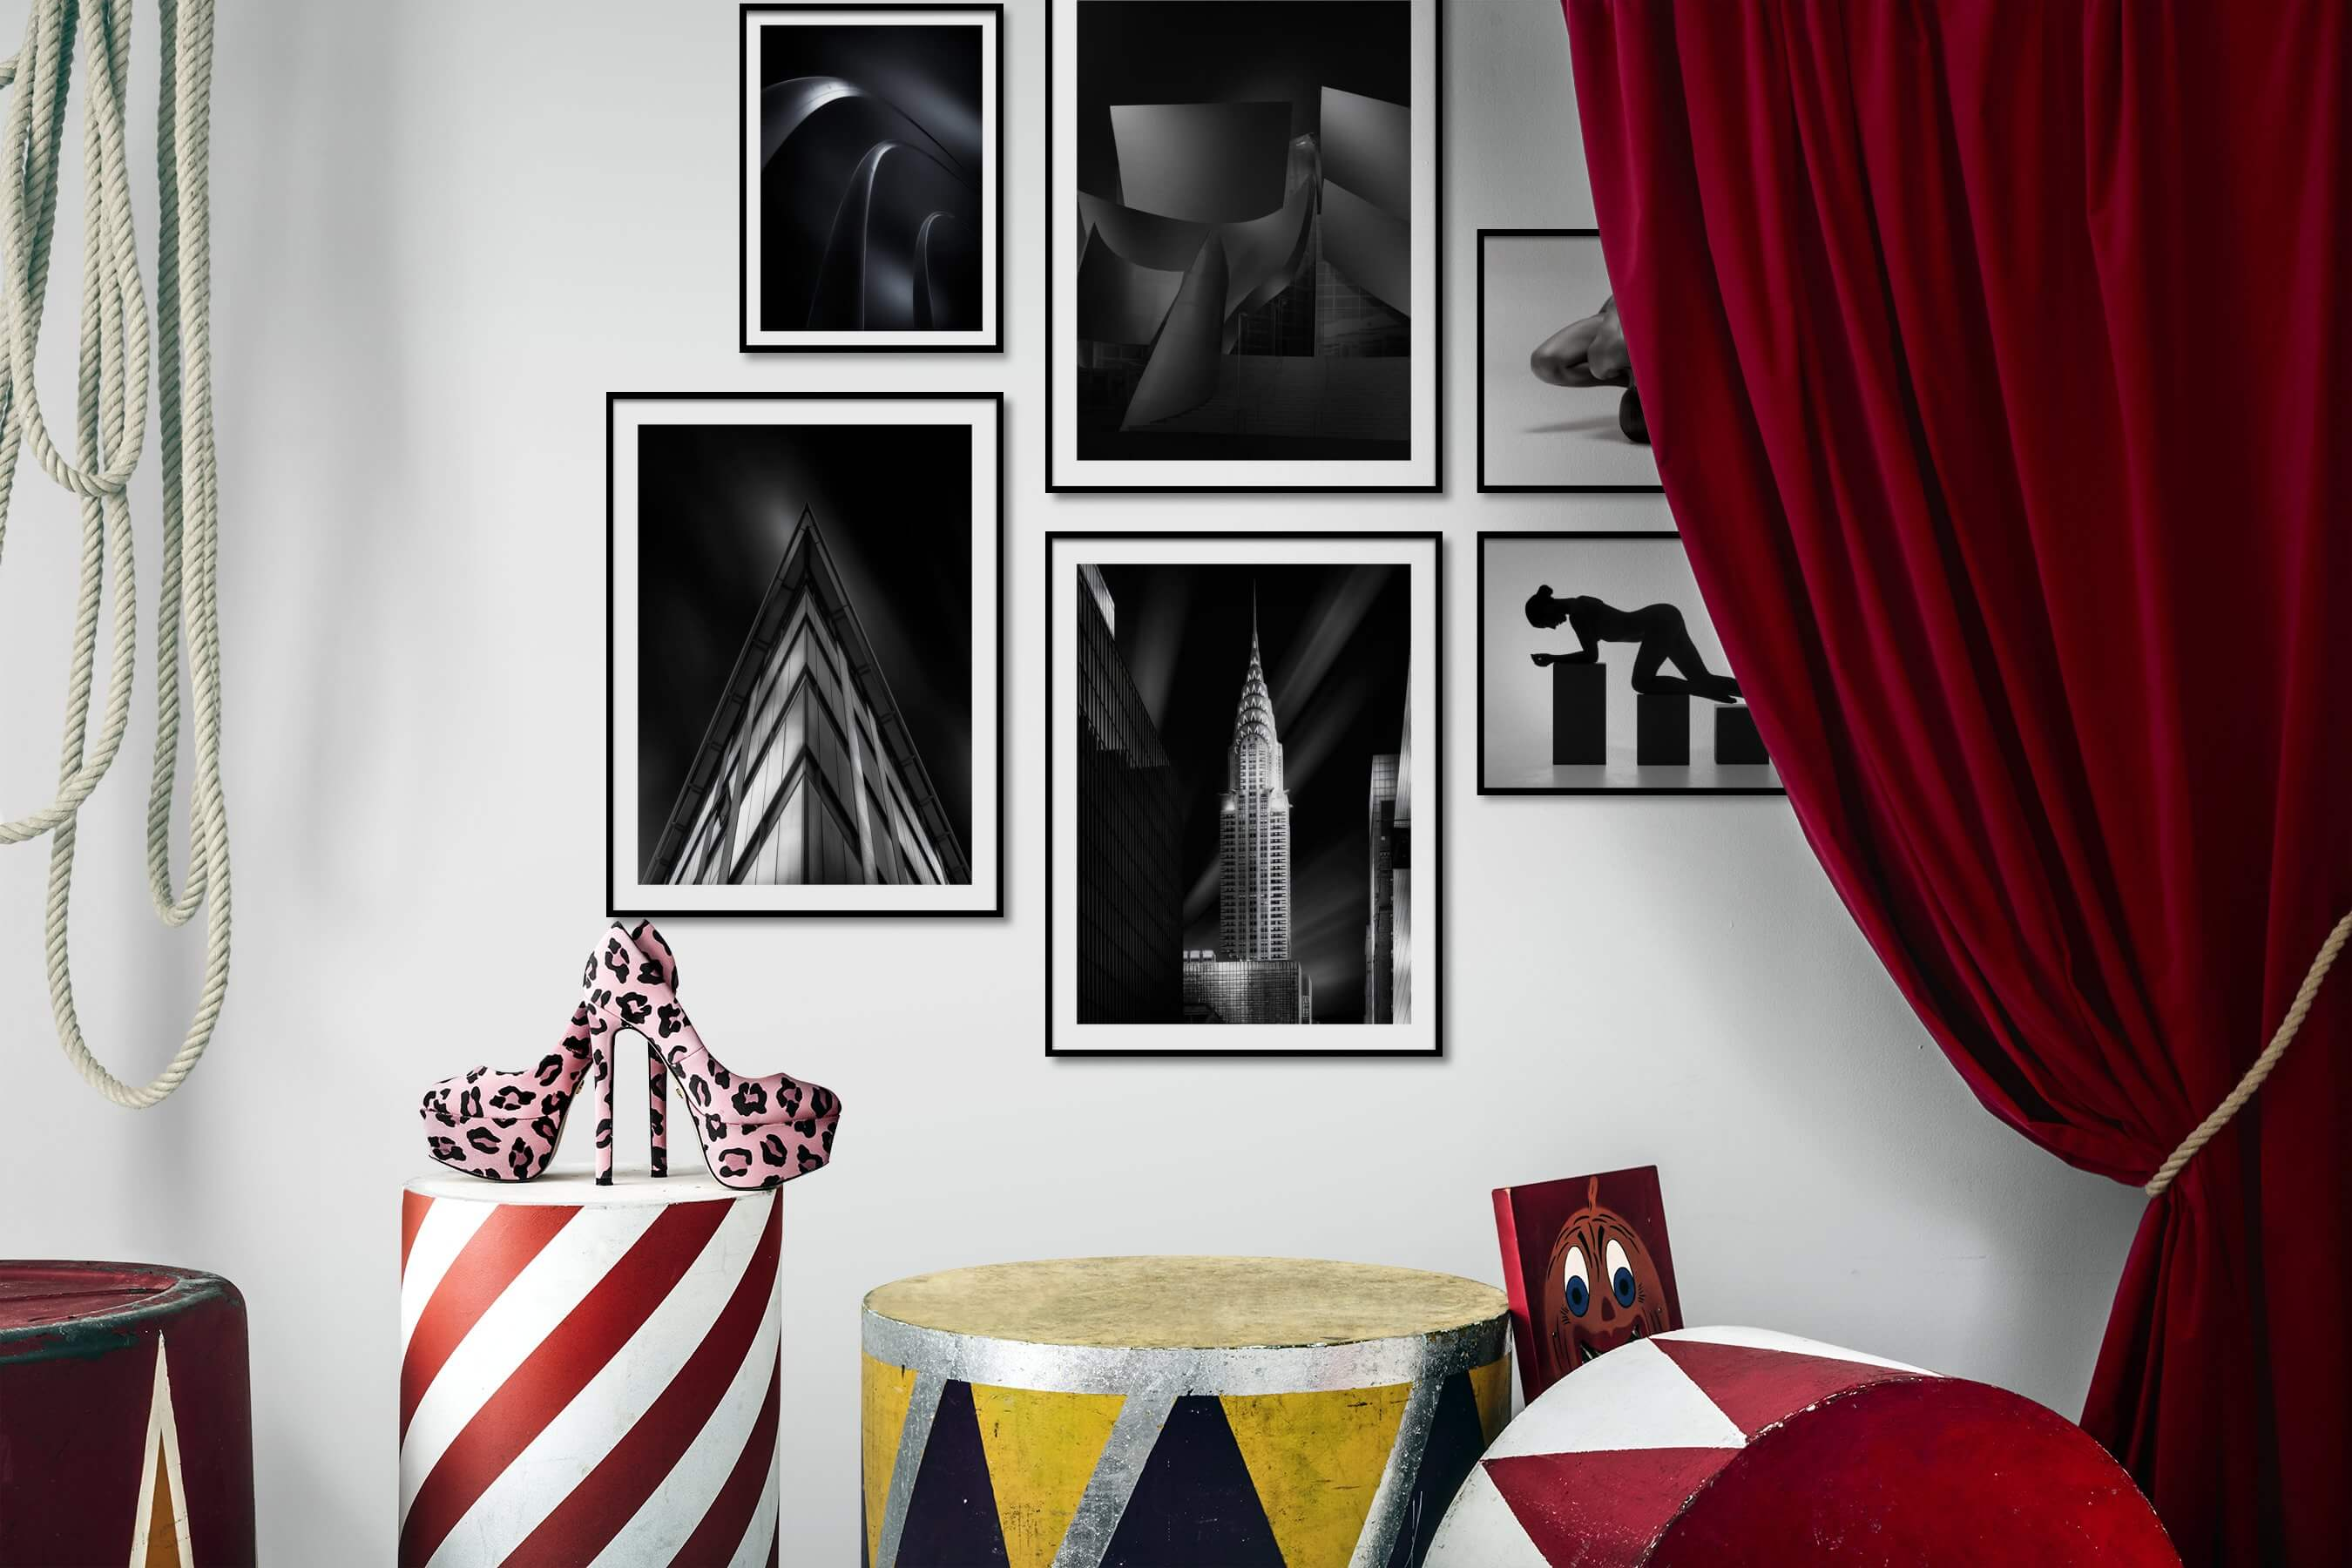 Gallery wall idea with six framed pictures arranged on a wall depicting Black & White, For the Minimalist, For the Moderate, City Life, Americana, Fashion & Beauty, Bright Tones, Mindfulness, and Artsy